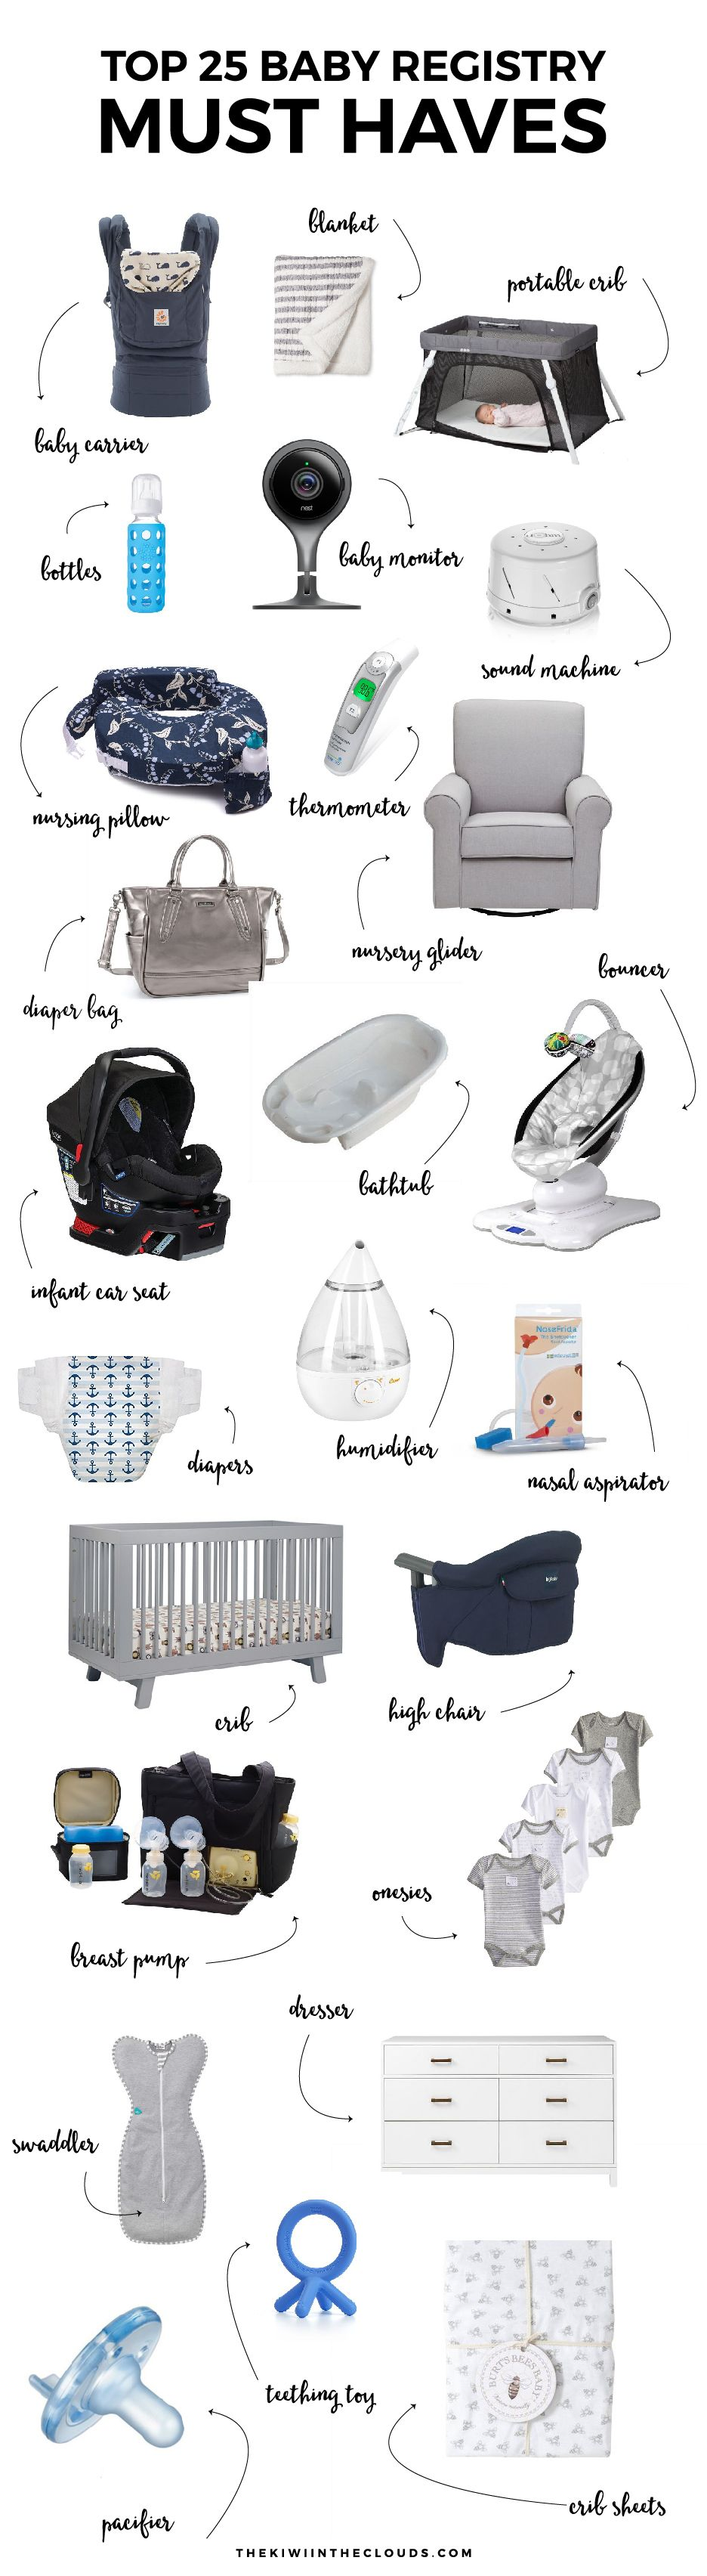 How To Find The Best Nursery Glider In 2019 For Your